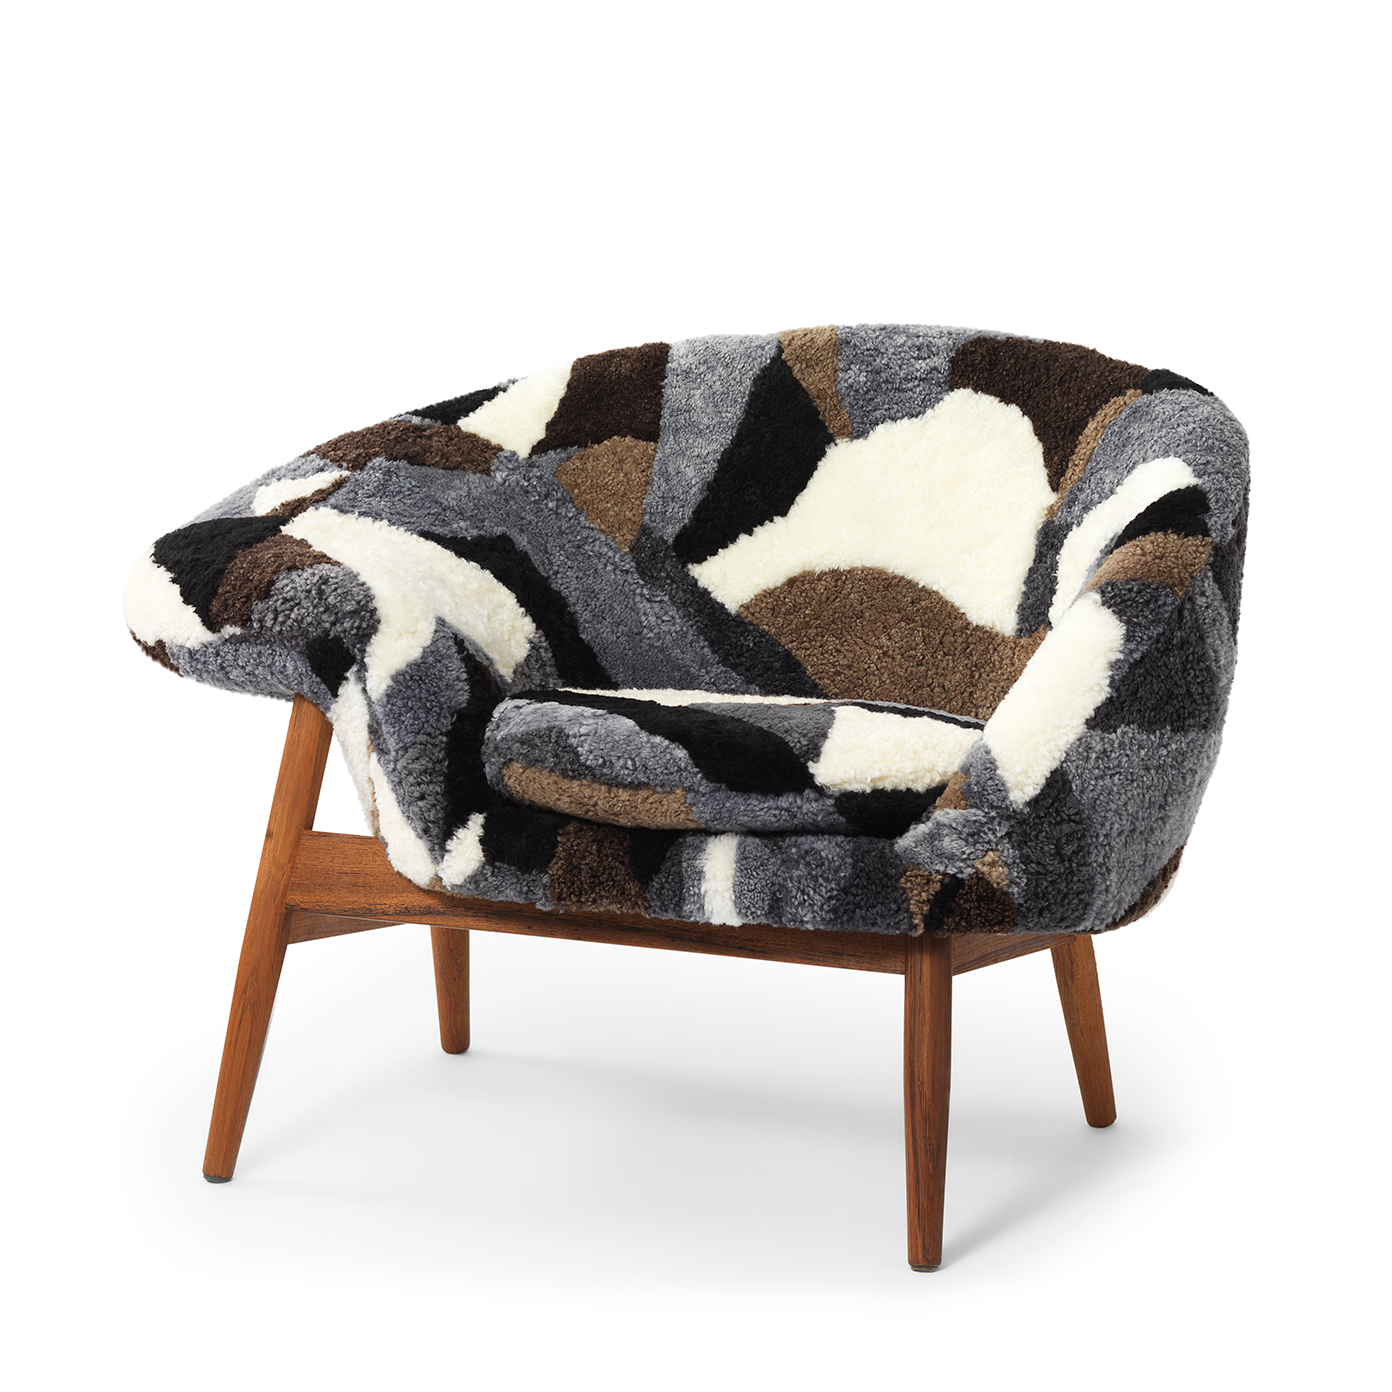 Warm Nordic Lounge chair